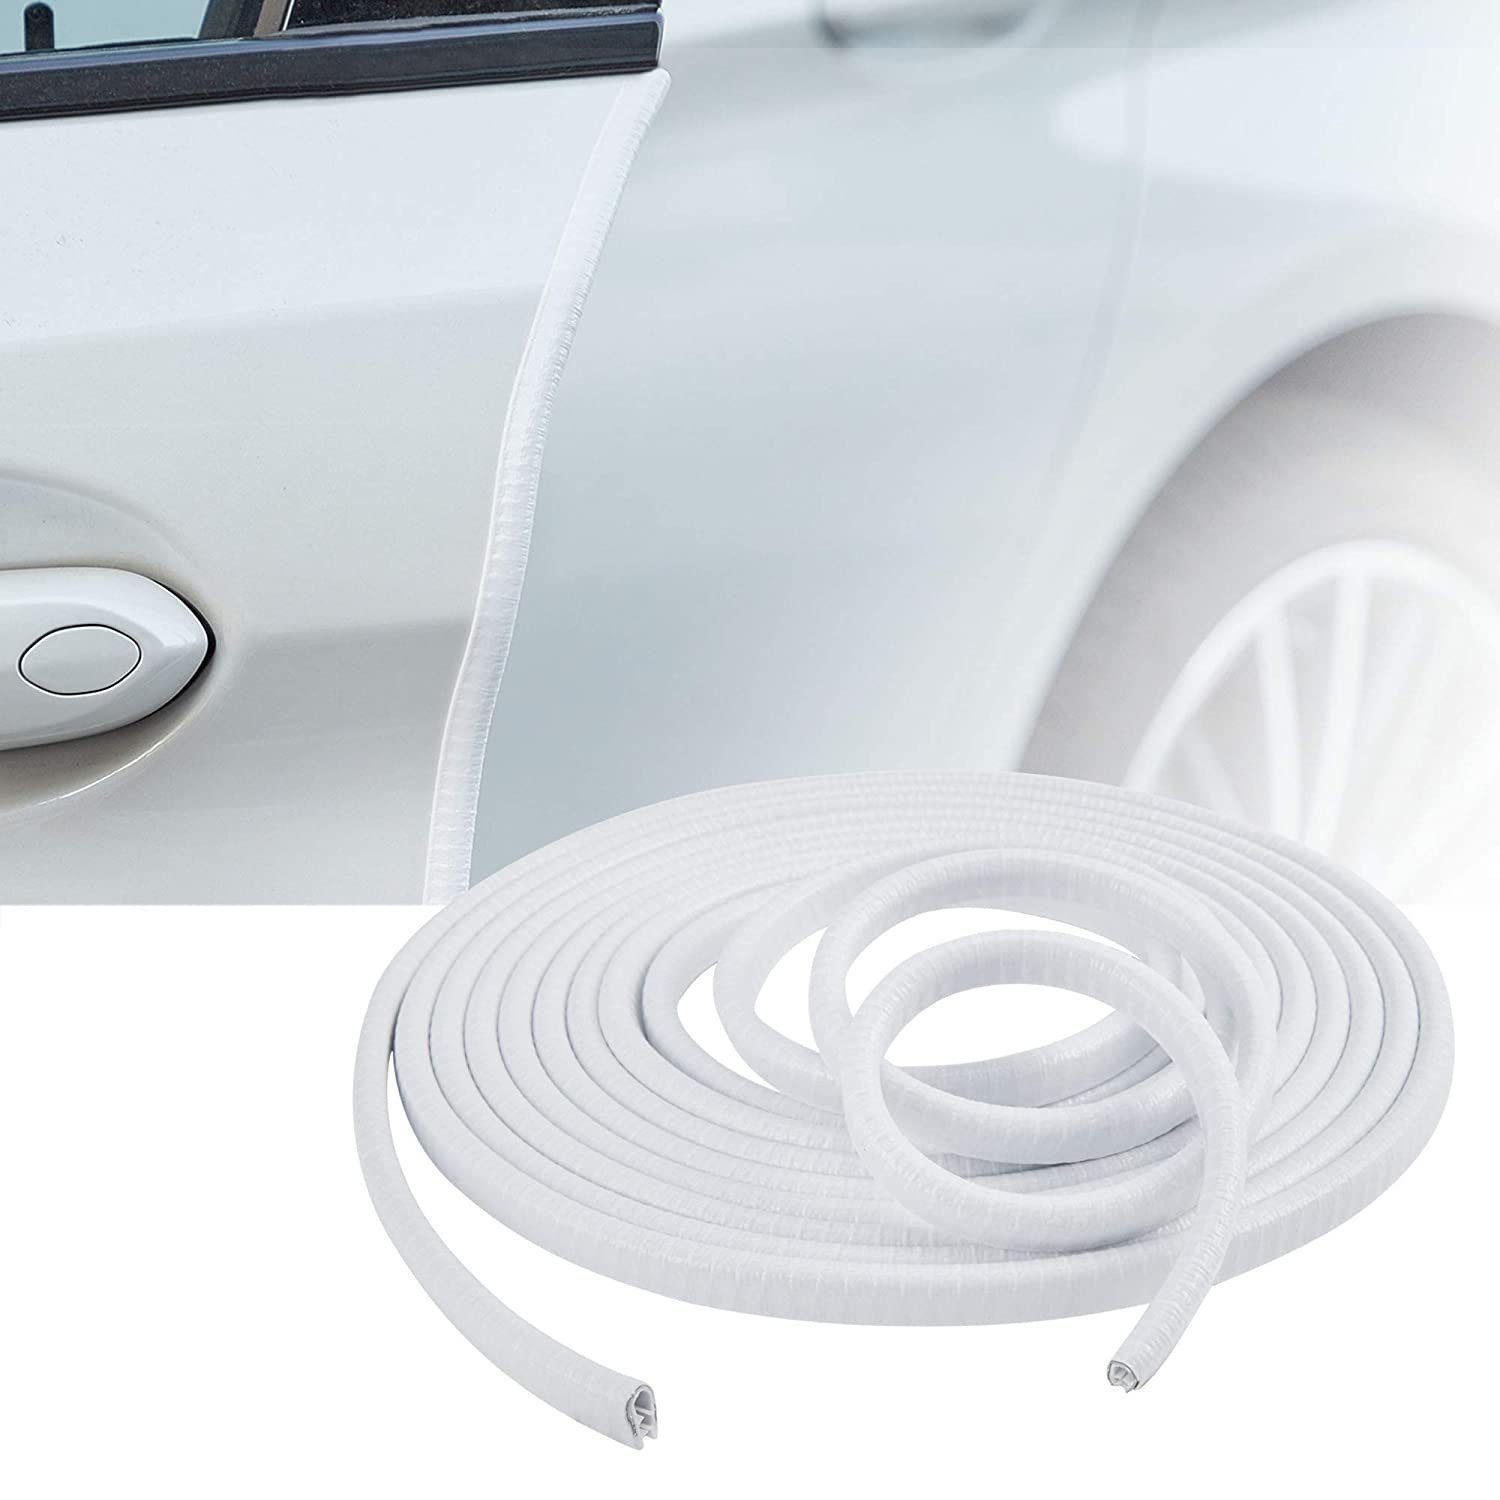 Flexible Anti-Collision No-Sticker Protected Lining Moulding Strips White 16ft TOMALL Car Door Guards U Shape Rubber Seal Protector 5M